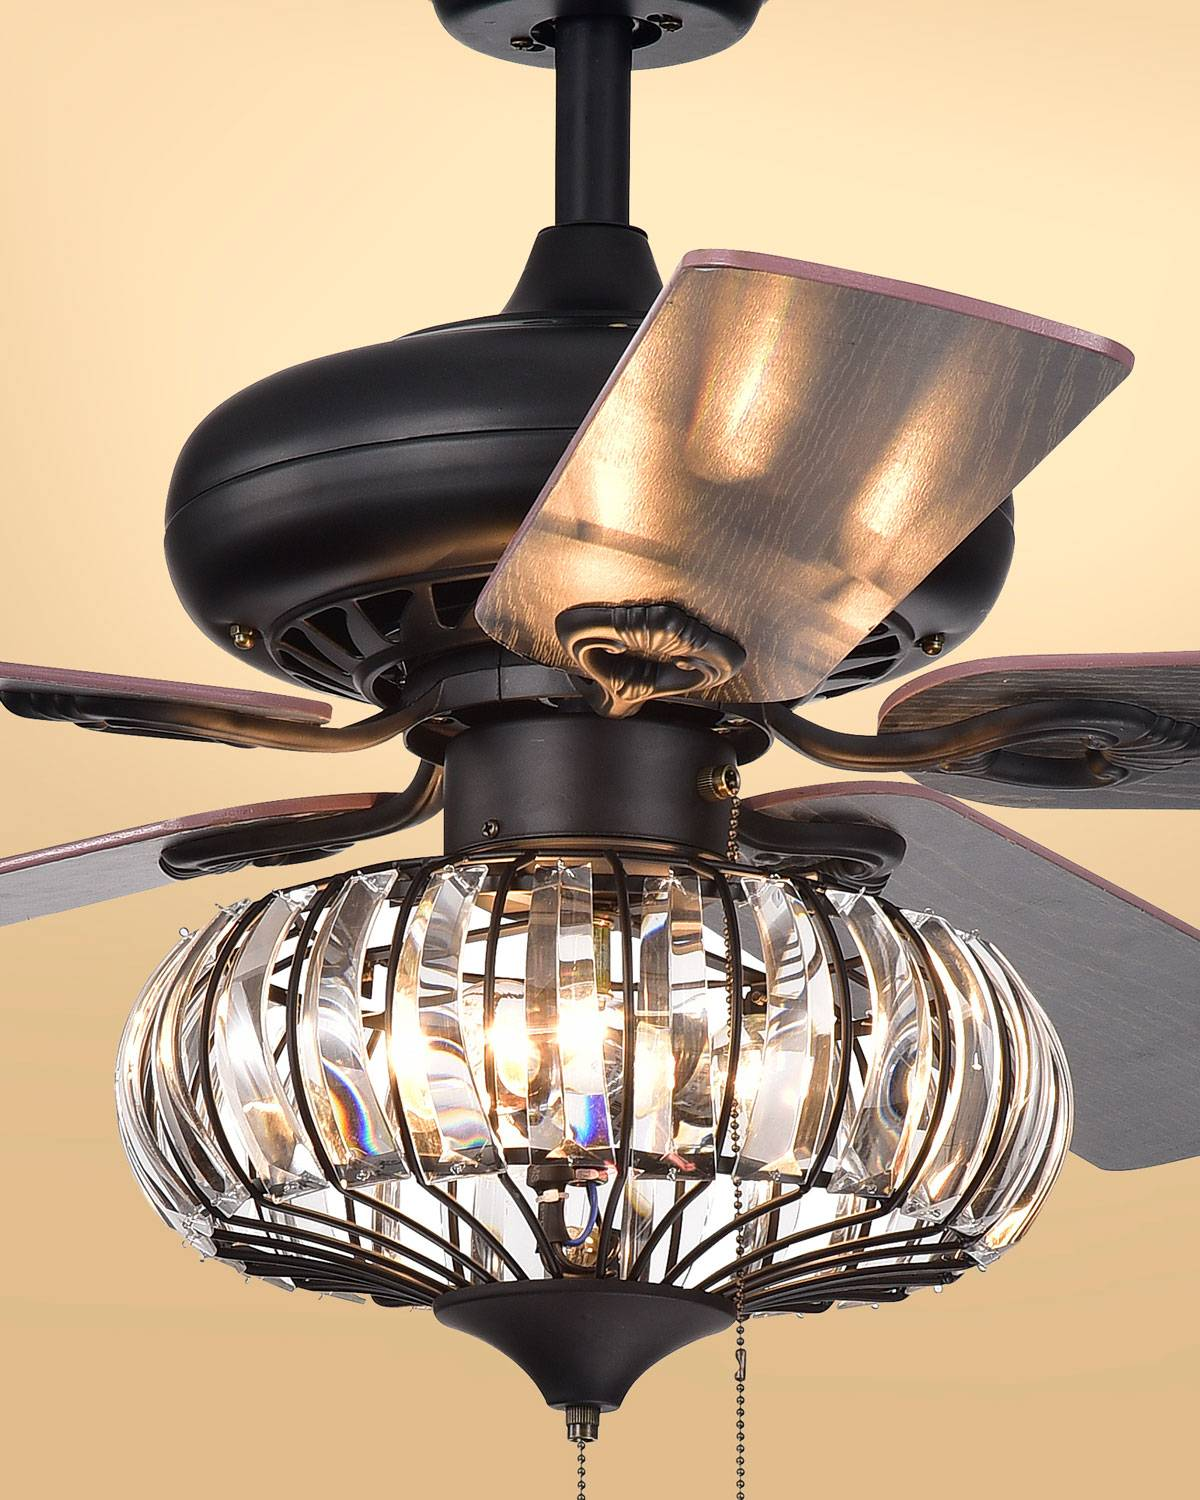 Home Accessories Chrysaor Curved Crystal Chandelier Ceiling Fan